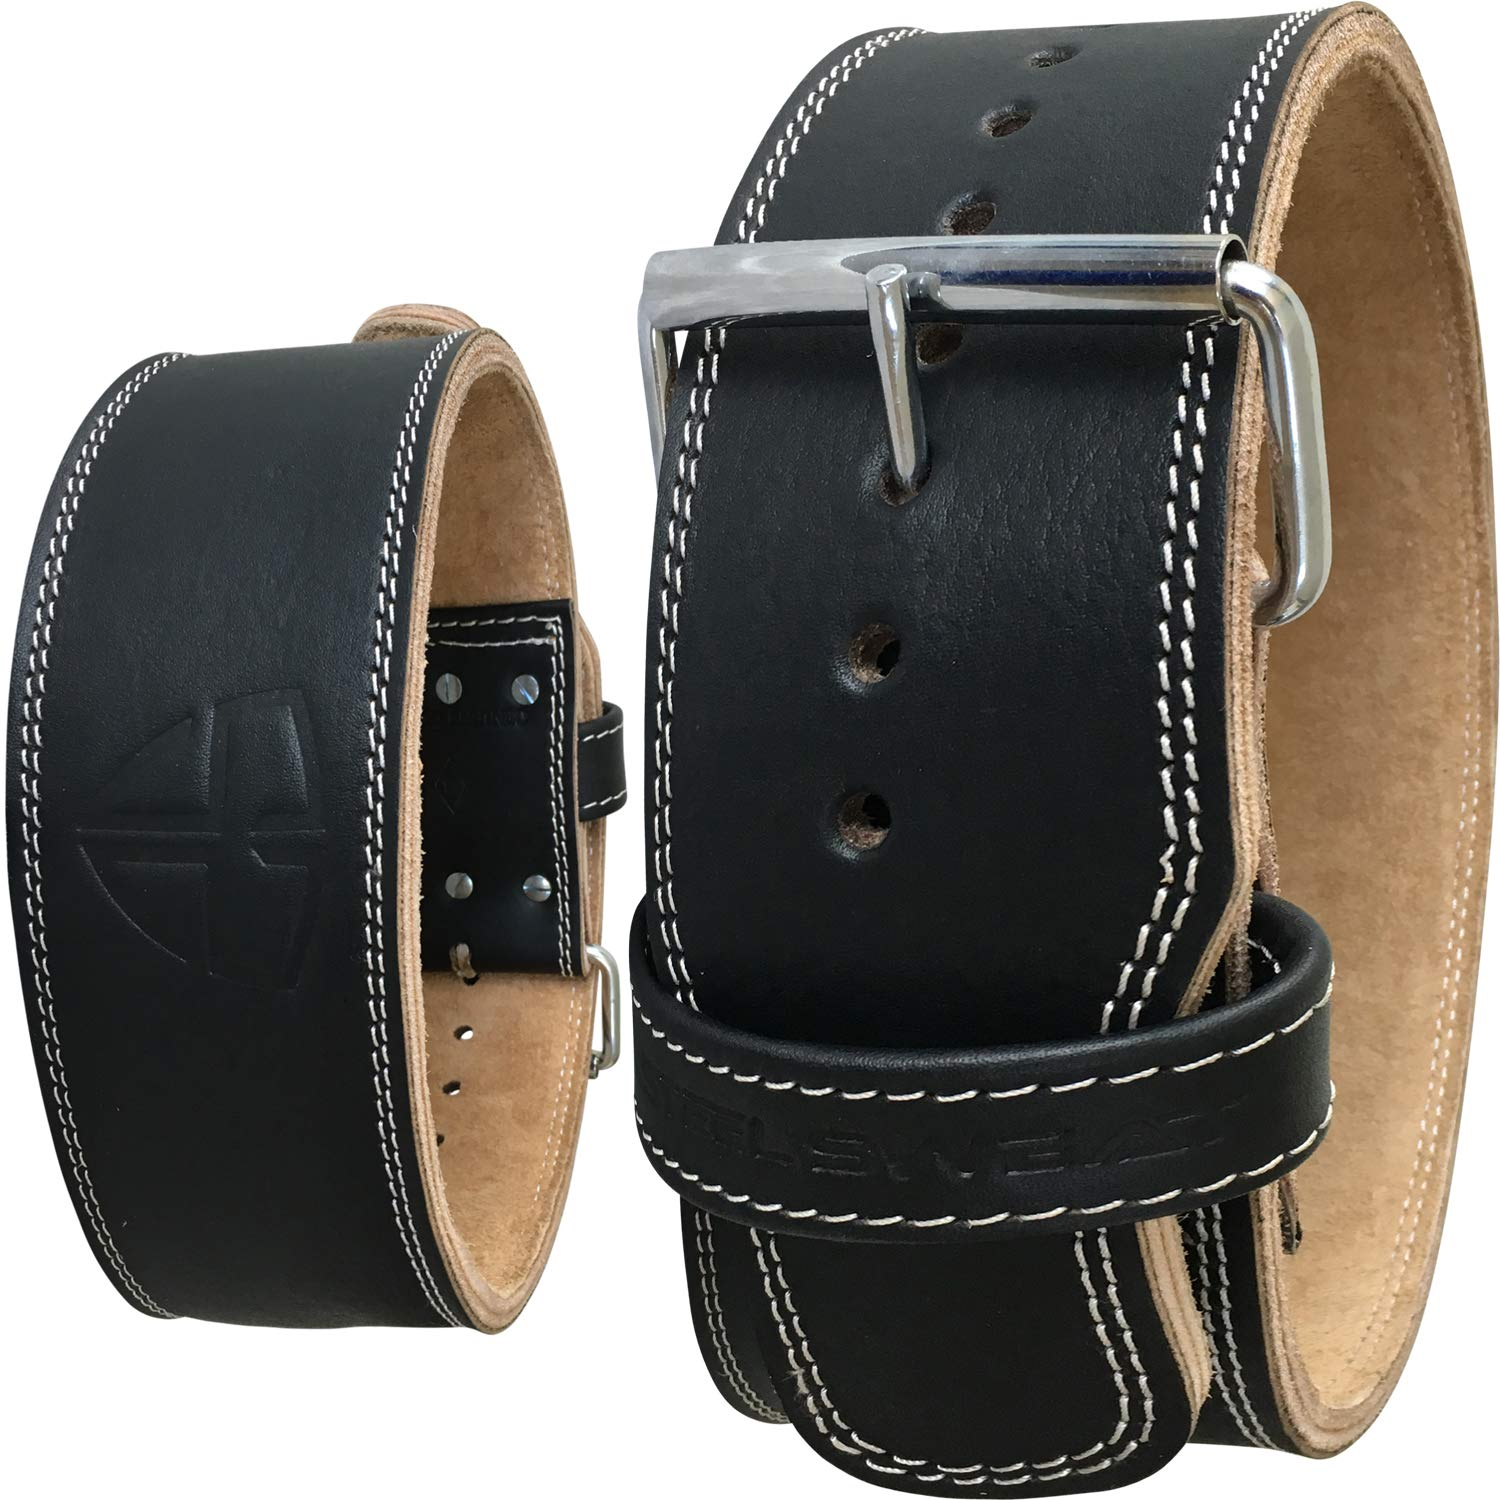 Steel Sweat Weight Lifting Belt - 4 Inches Wide by 10mm - Single Prong Powerlifting Belt That's Heavy Duty - Genuine Cowhide Leather - Medium Texus by Steel Sweat (Image #1)